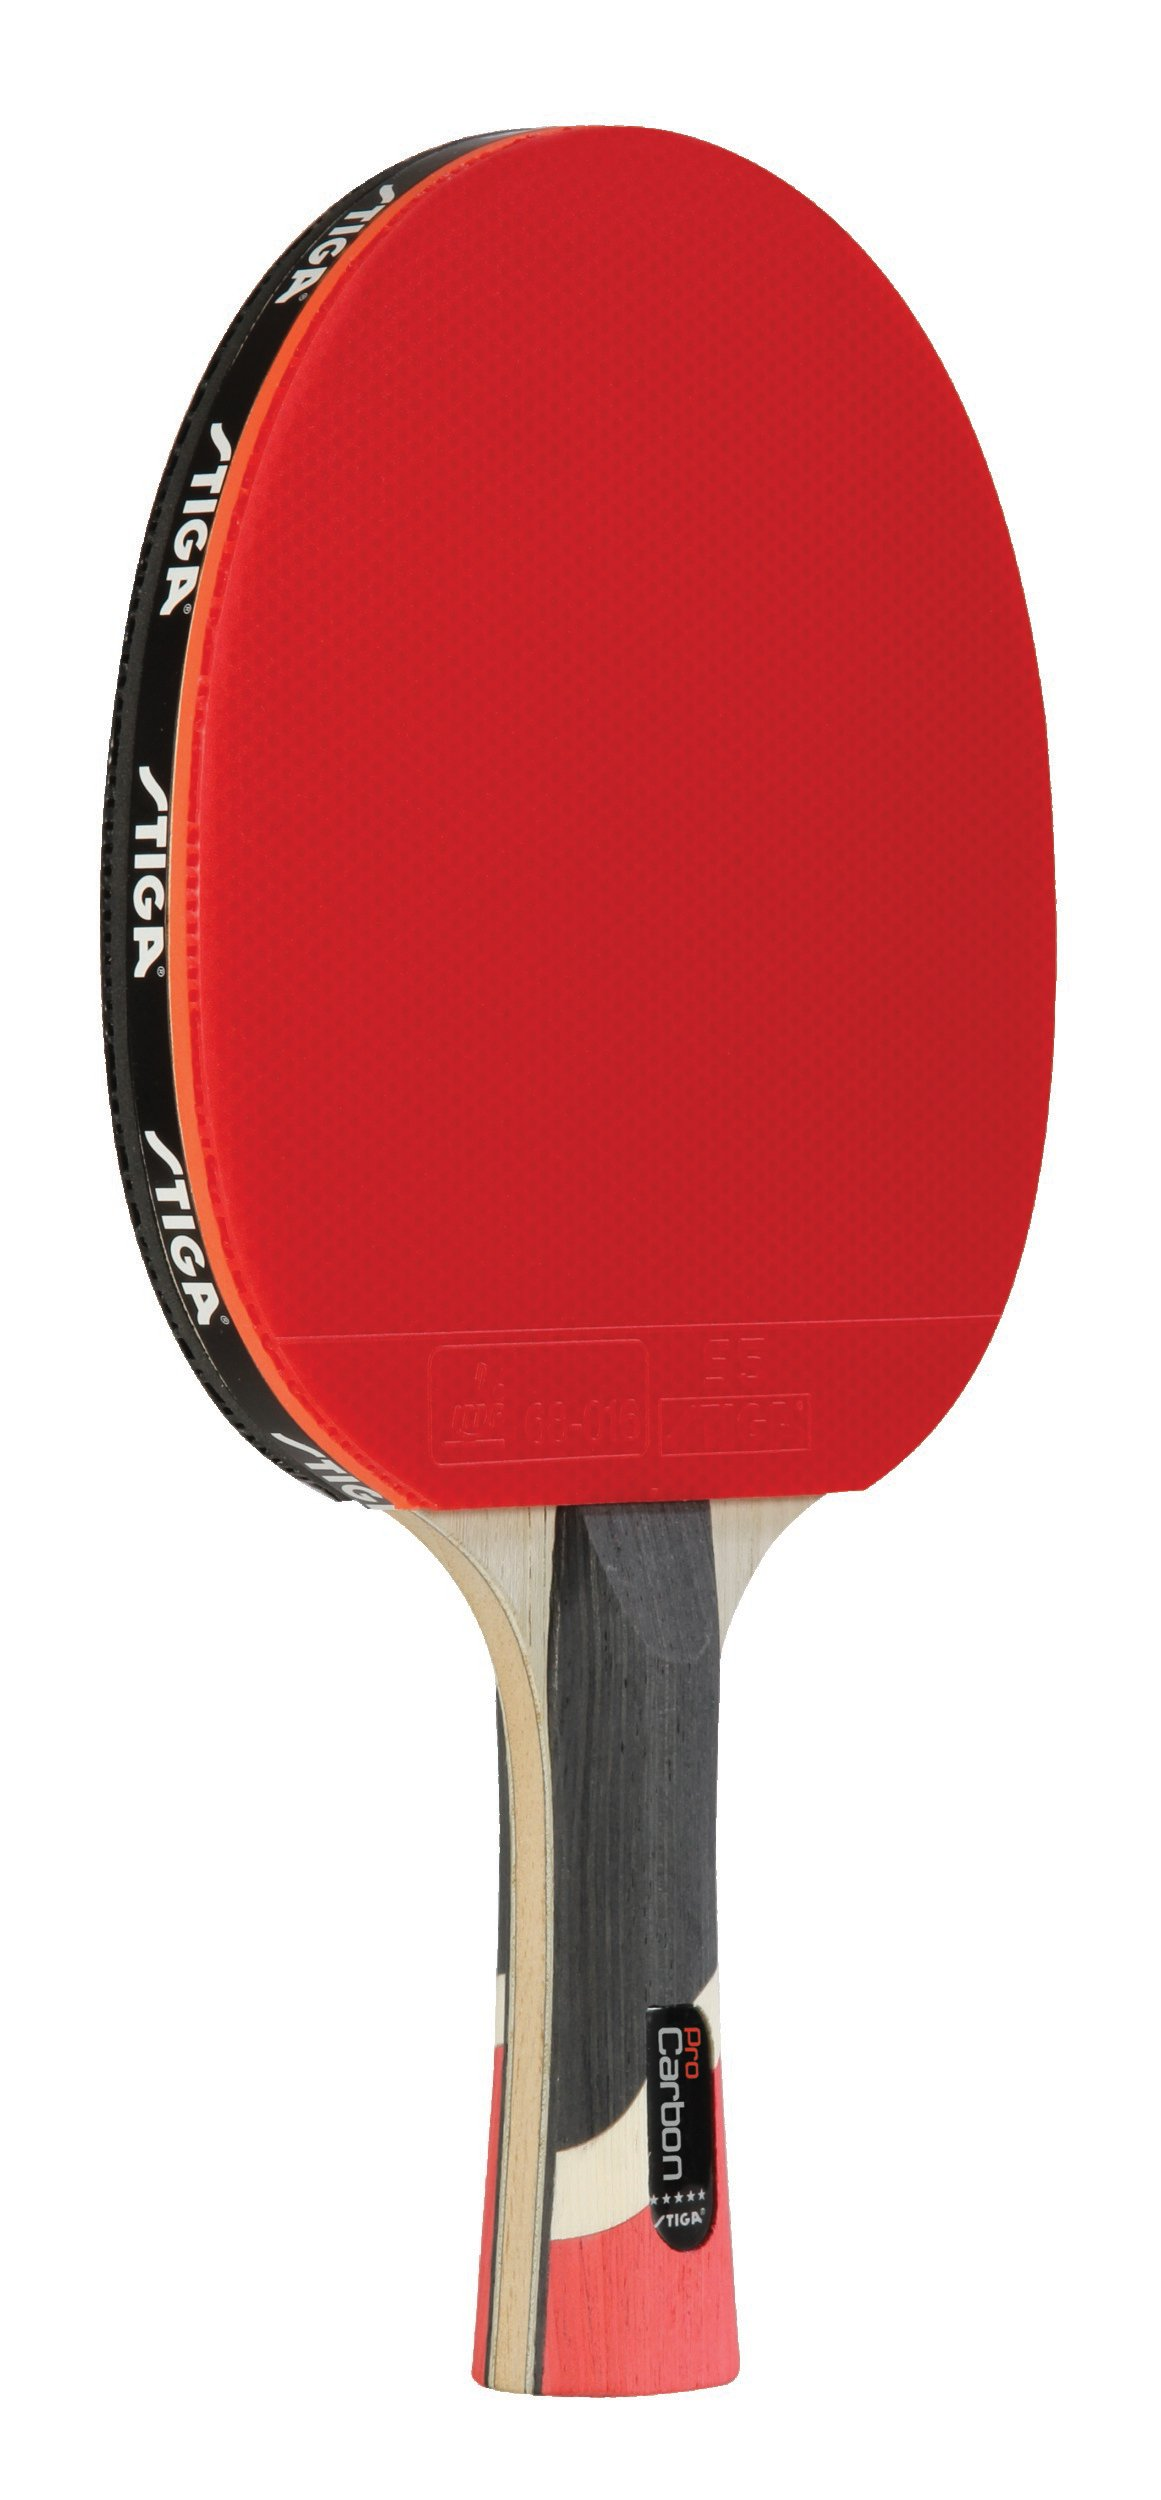 STIGA Pro Carbon Performance-Level Table Tennis Racket for Tournament Play